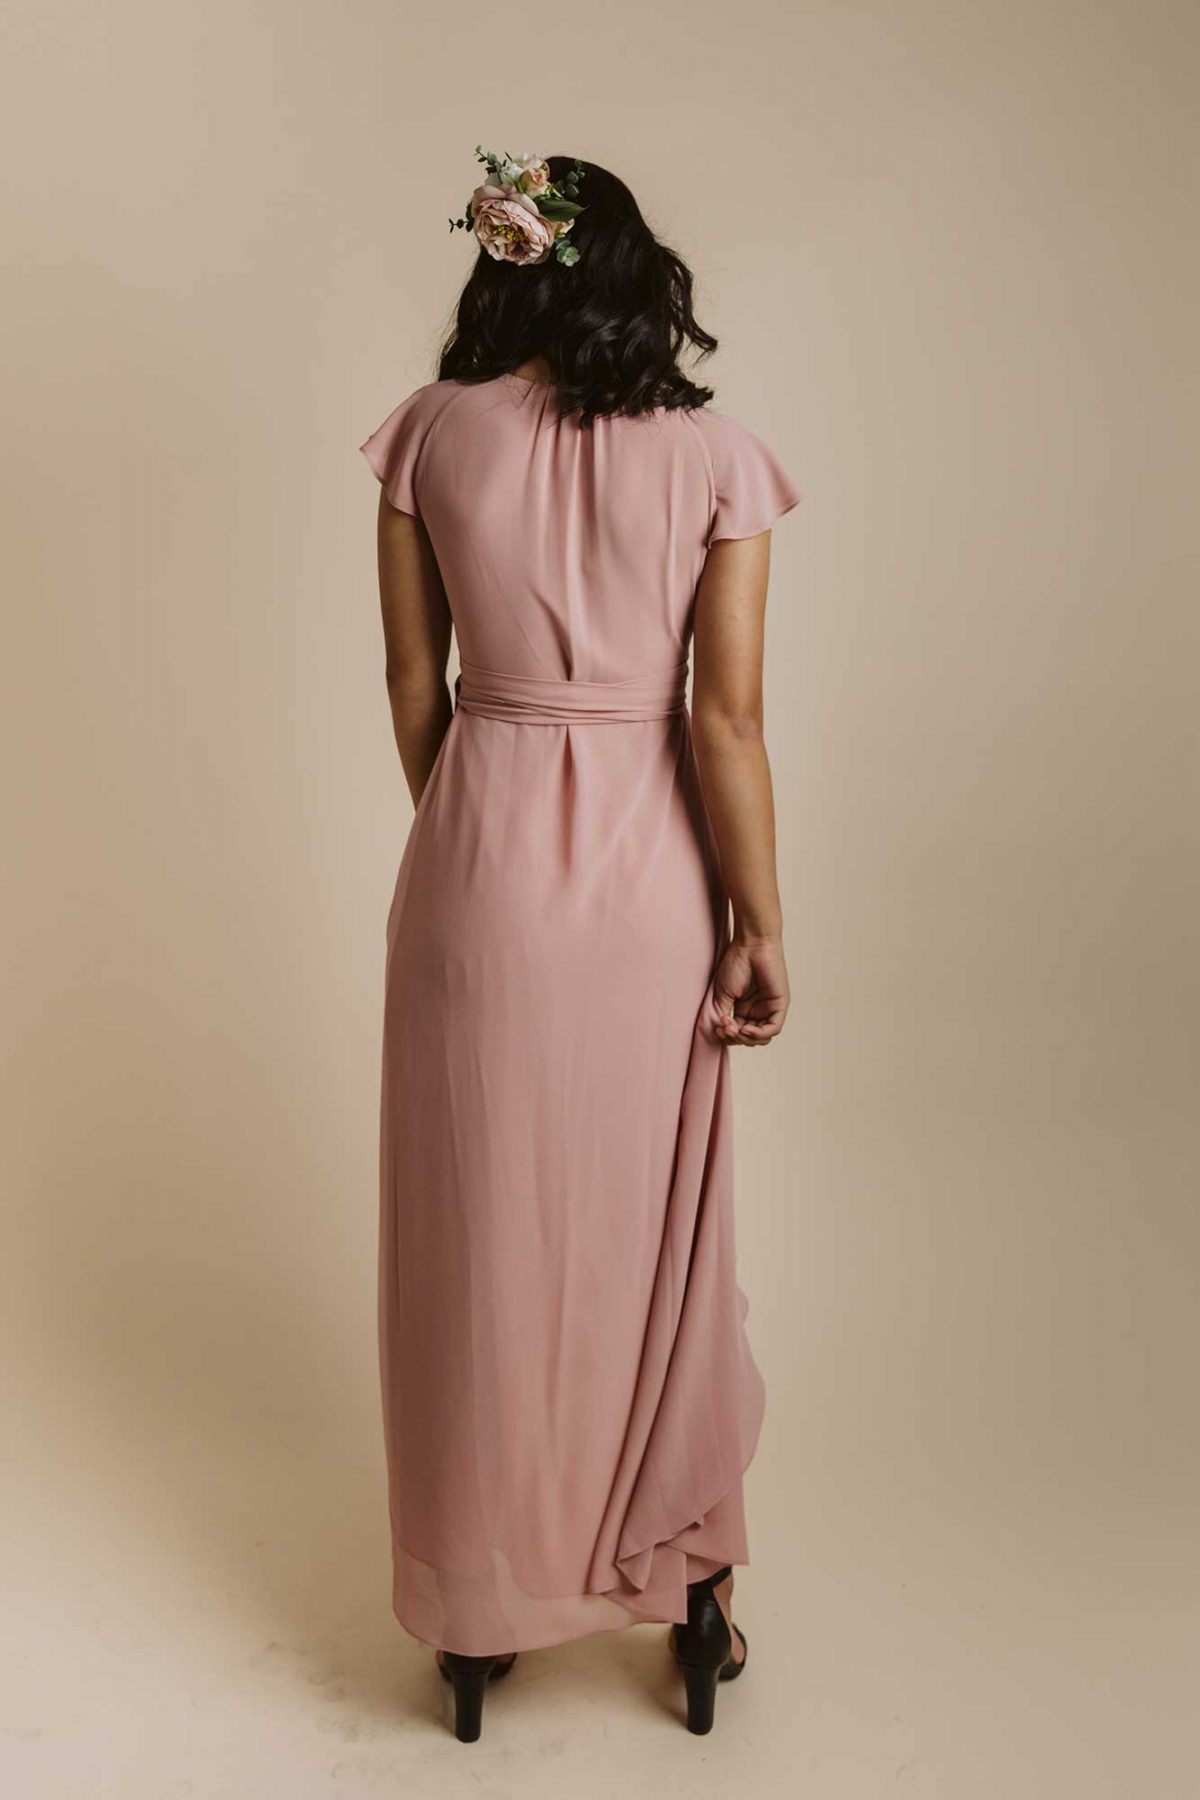 Marianne dress in dusty pink colour back view